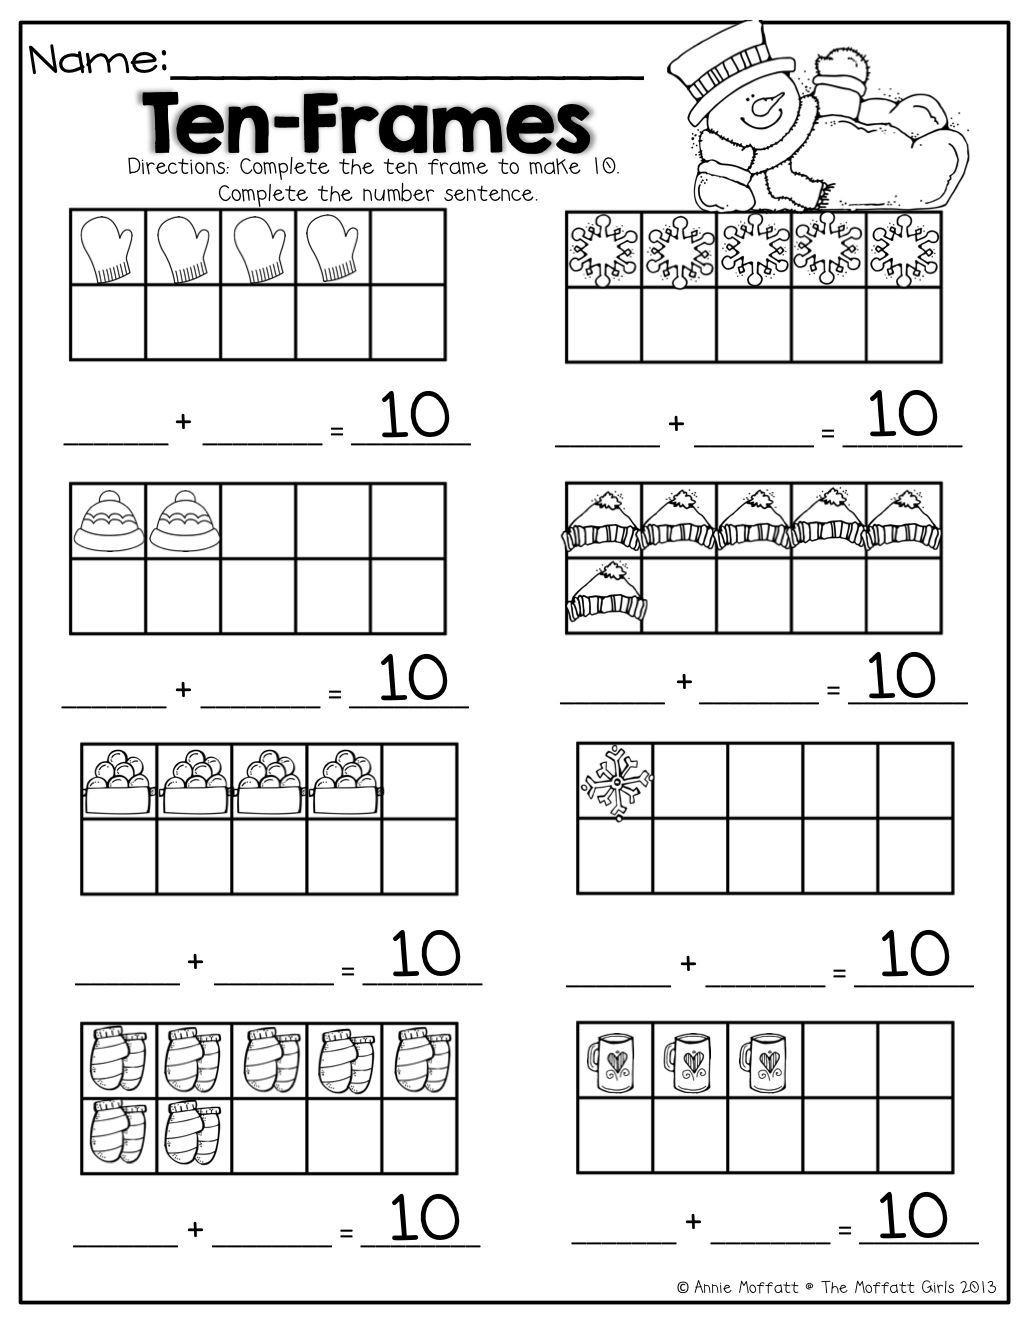 Printable Typing Worksheets Typekids Online Typing Course for Kids Adventures In